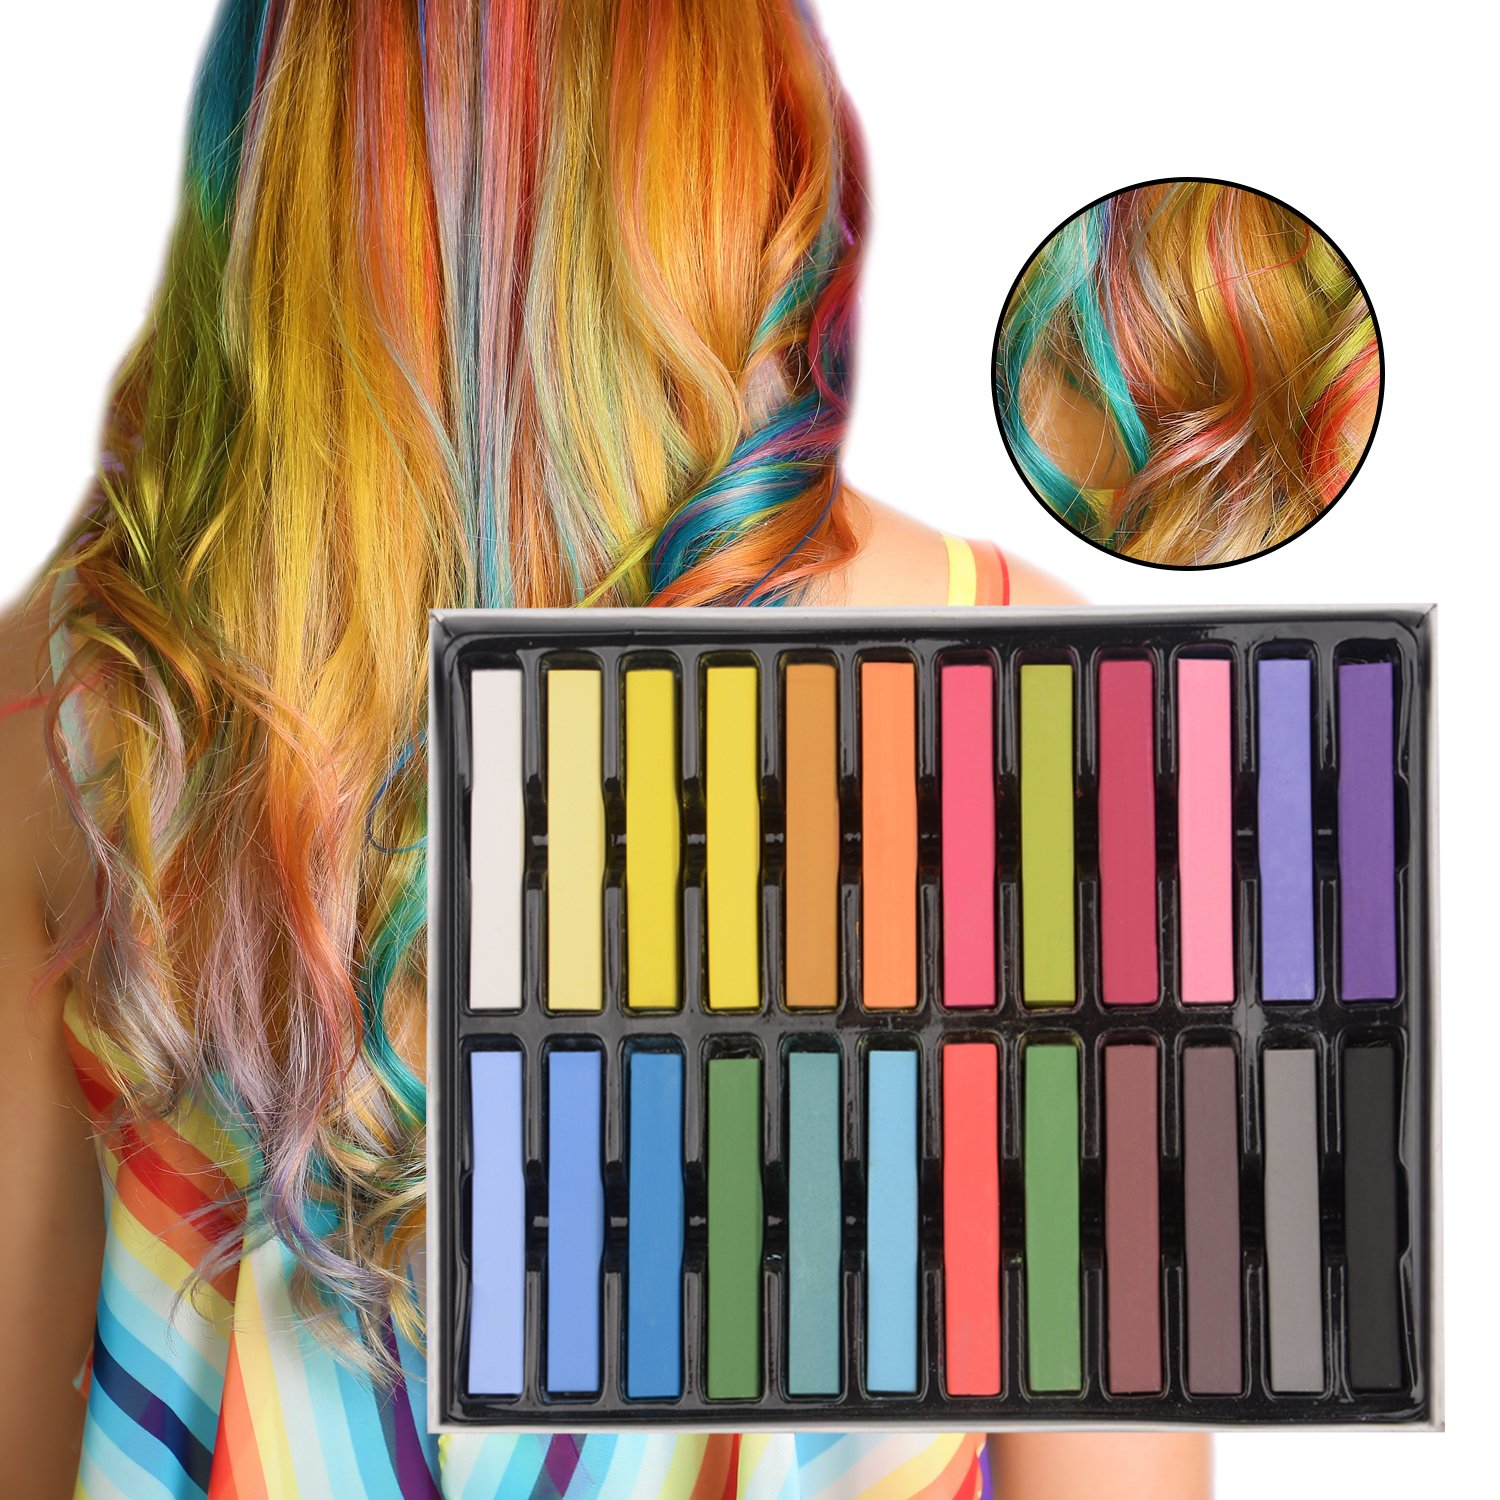 Hair Chalk, Trippix 24 color Temporary Hair Color Pens, Non-Toxic Hair Dye Temporary Hair Chalk Pens Washes Out Easily - Perfect Gift for Girls Boys Age 4 5 6 7 8 9 10 years old